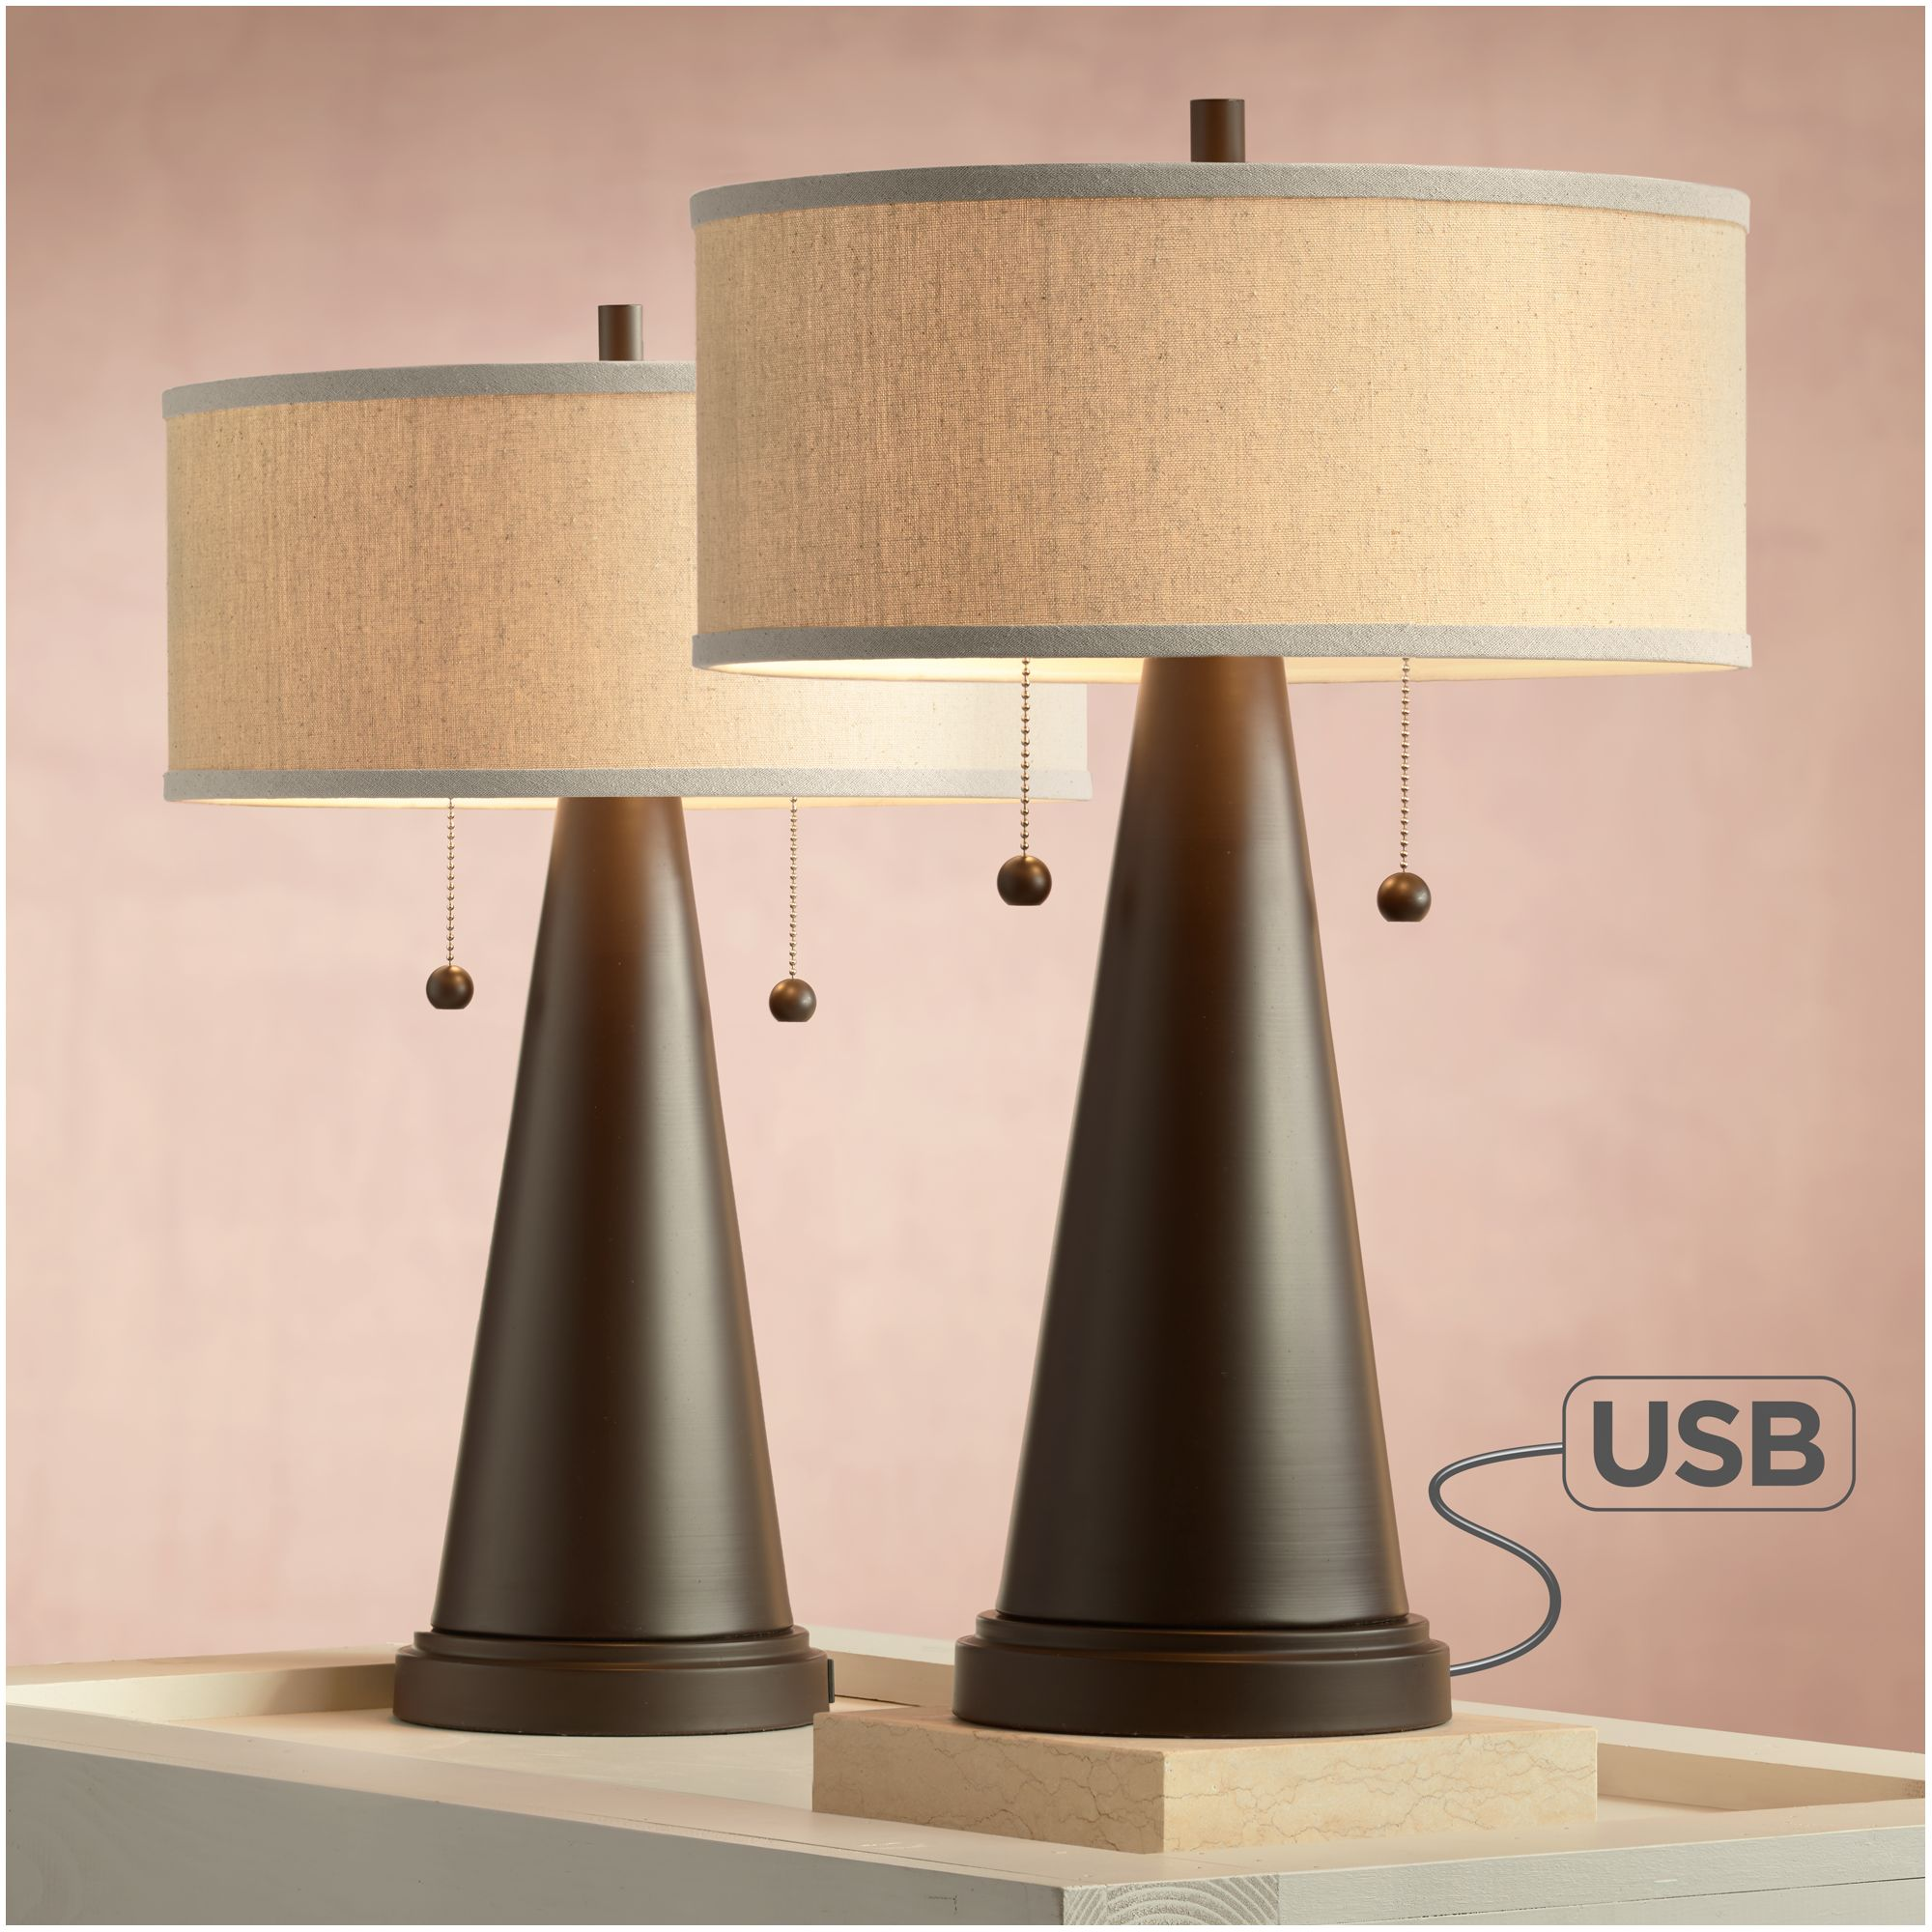 franklin iron works mid century modern accent table lamps set with usb port bronze metal natural linen drum shade for bedroom antique brass coffee unfinished chairs lamp round